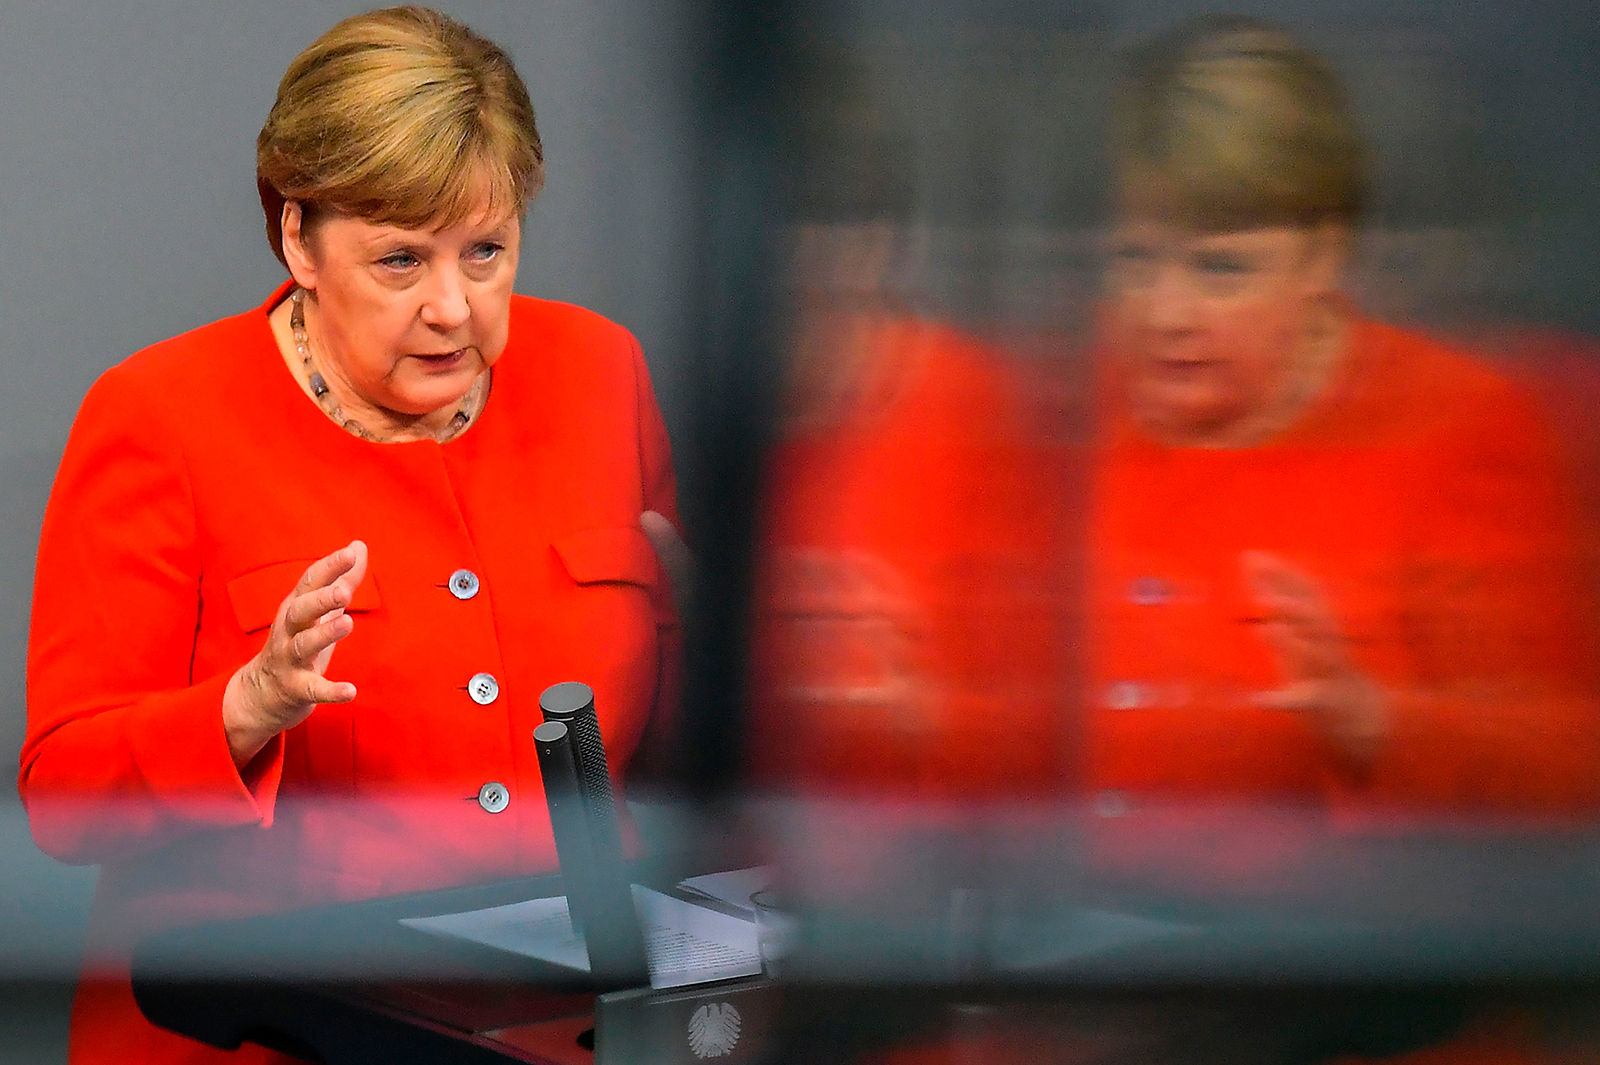 German Chancellor Angela Merkel speaks during a sitting of the Bundestag, Germany's lower house of parliament in Berlin on June 18.